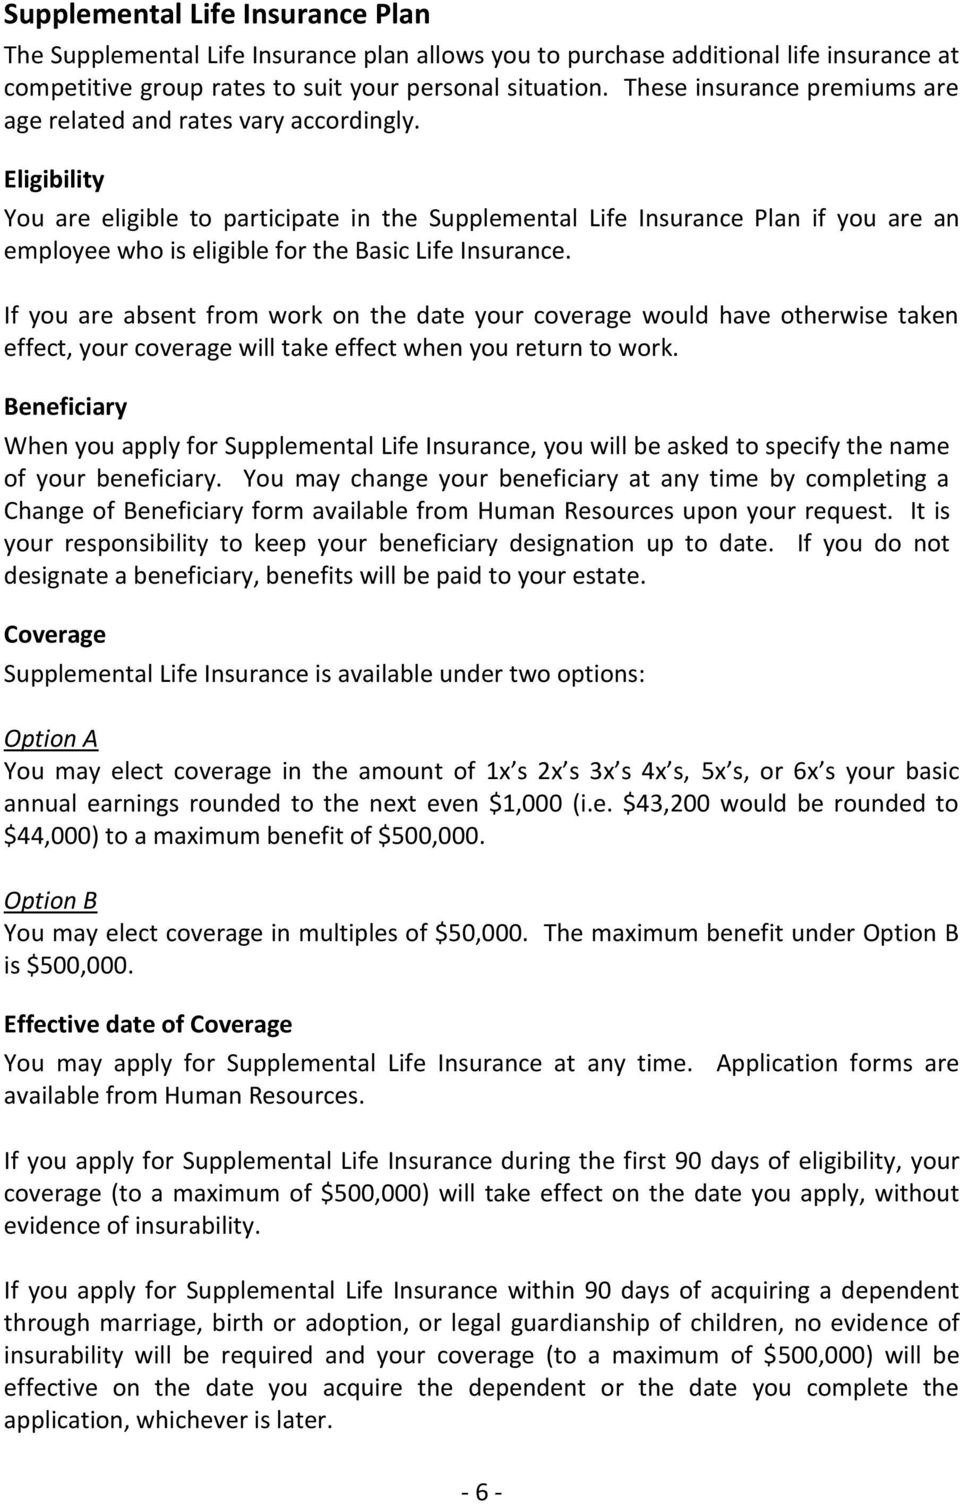 Eligibility You are eligible to participate in the Supplemental Life Insurance Plan if you are an employee who is eligible for the Basic Life Insurance.